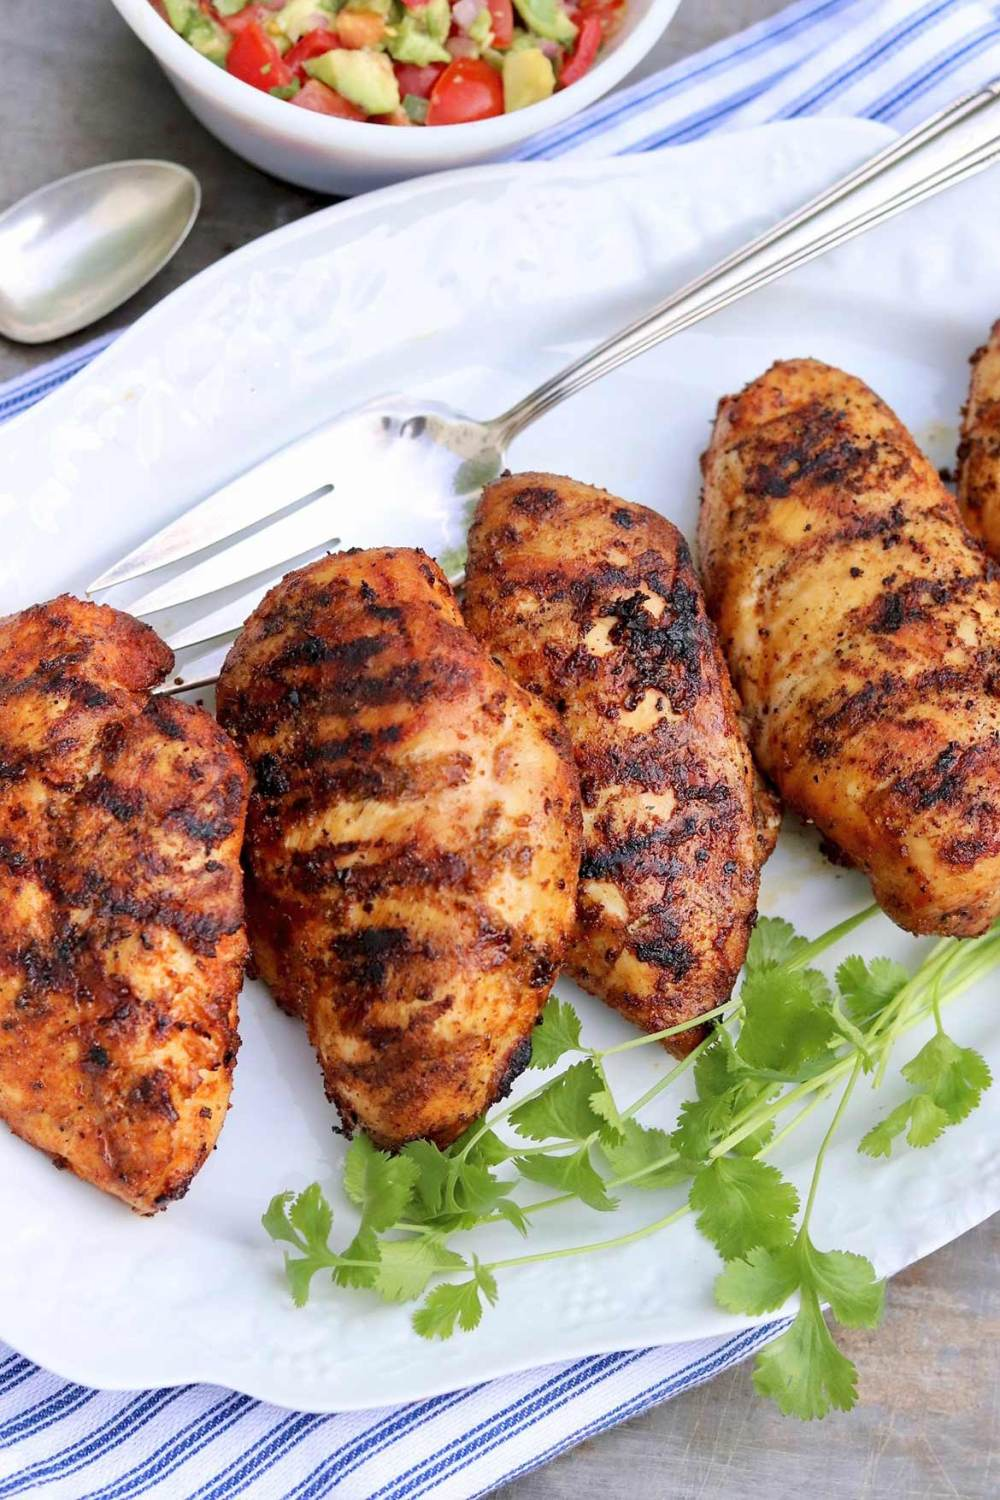 Sazón Grilled Chicken - This little spice packet (or the easy homemade option) adds incredible flavor when used as a rub for grilled chicken!